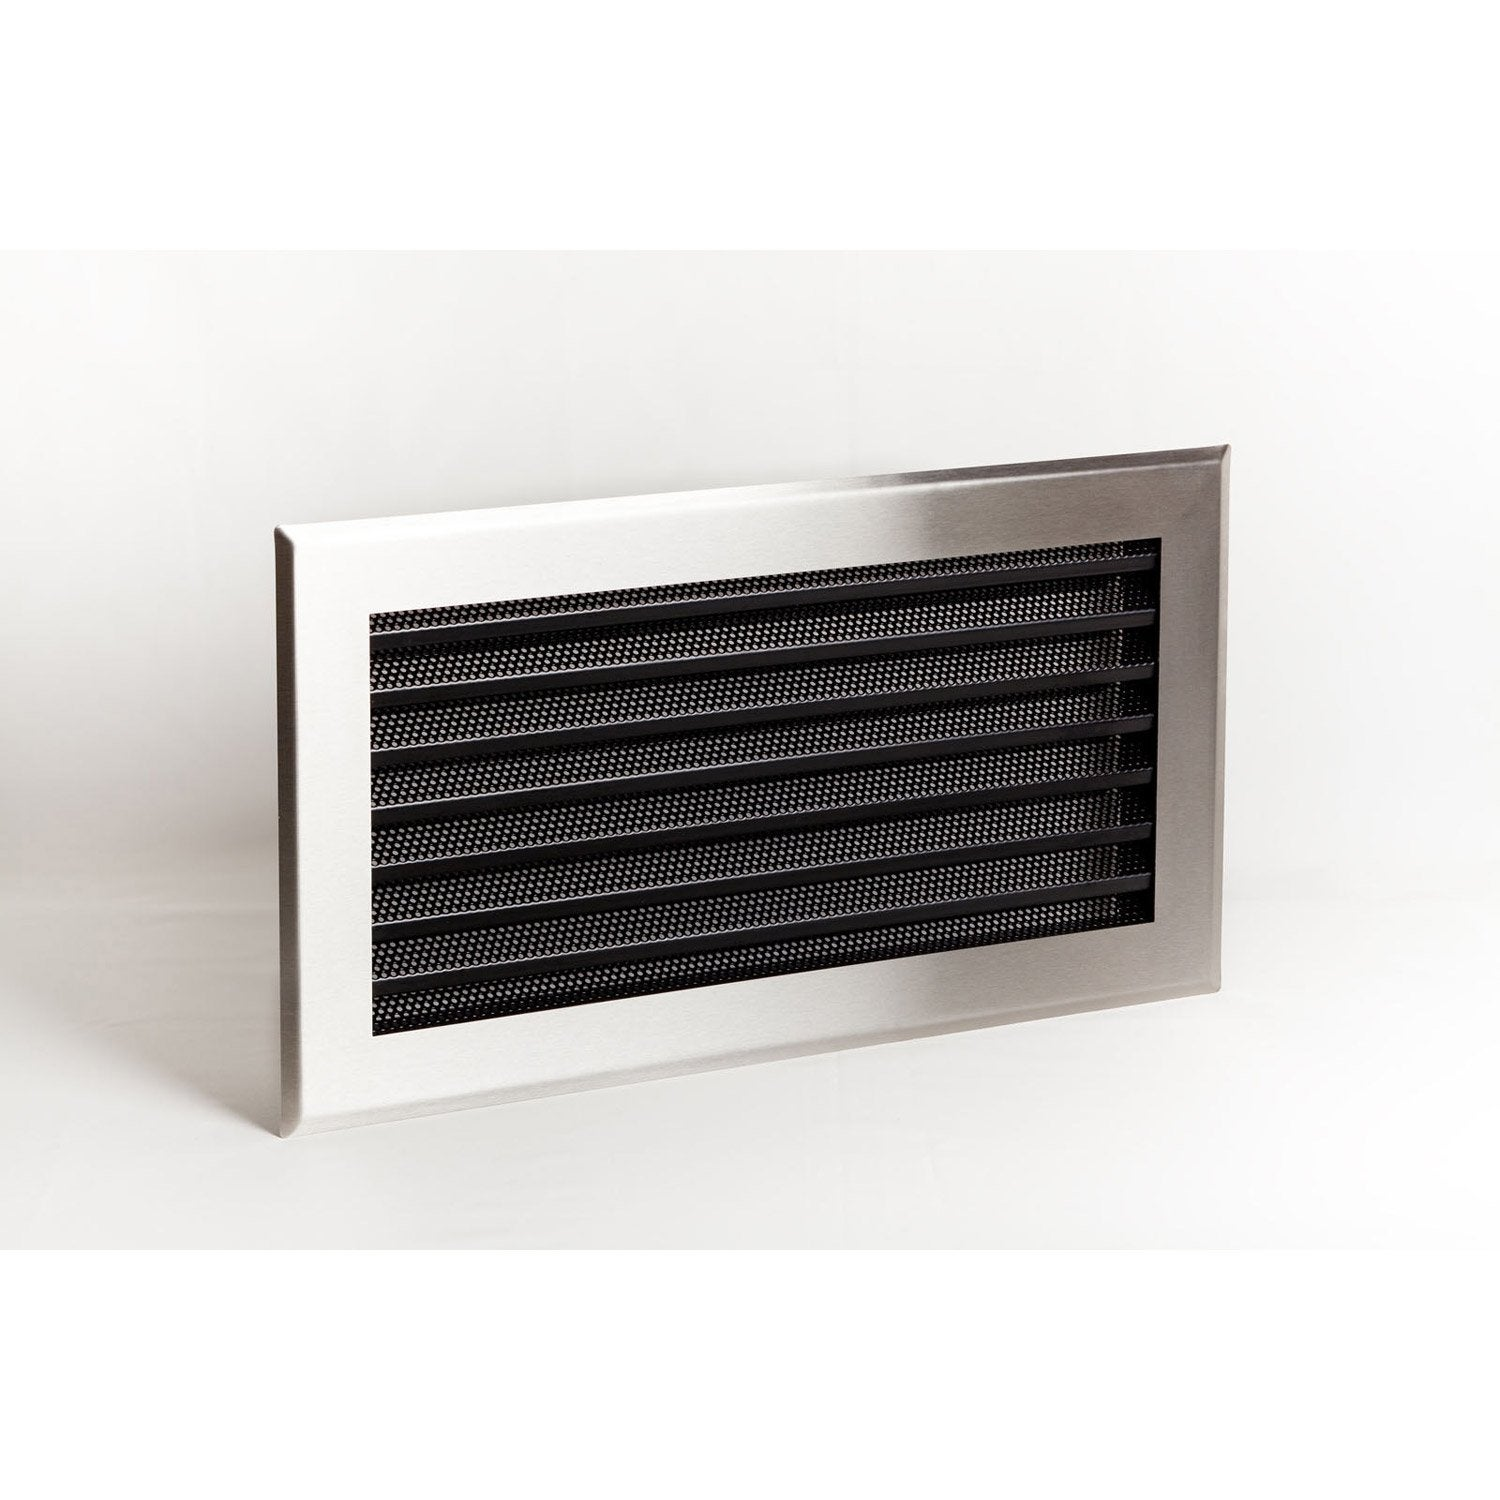 grille de ventilation inox et acier equation lamelles inox. Black Bedroom Furniture Sets. Home Design Ideas